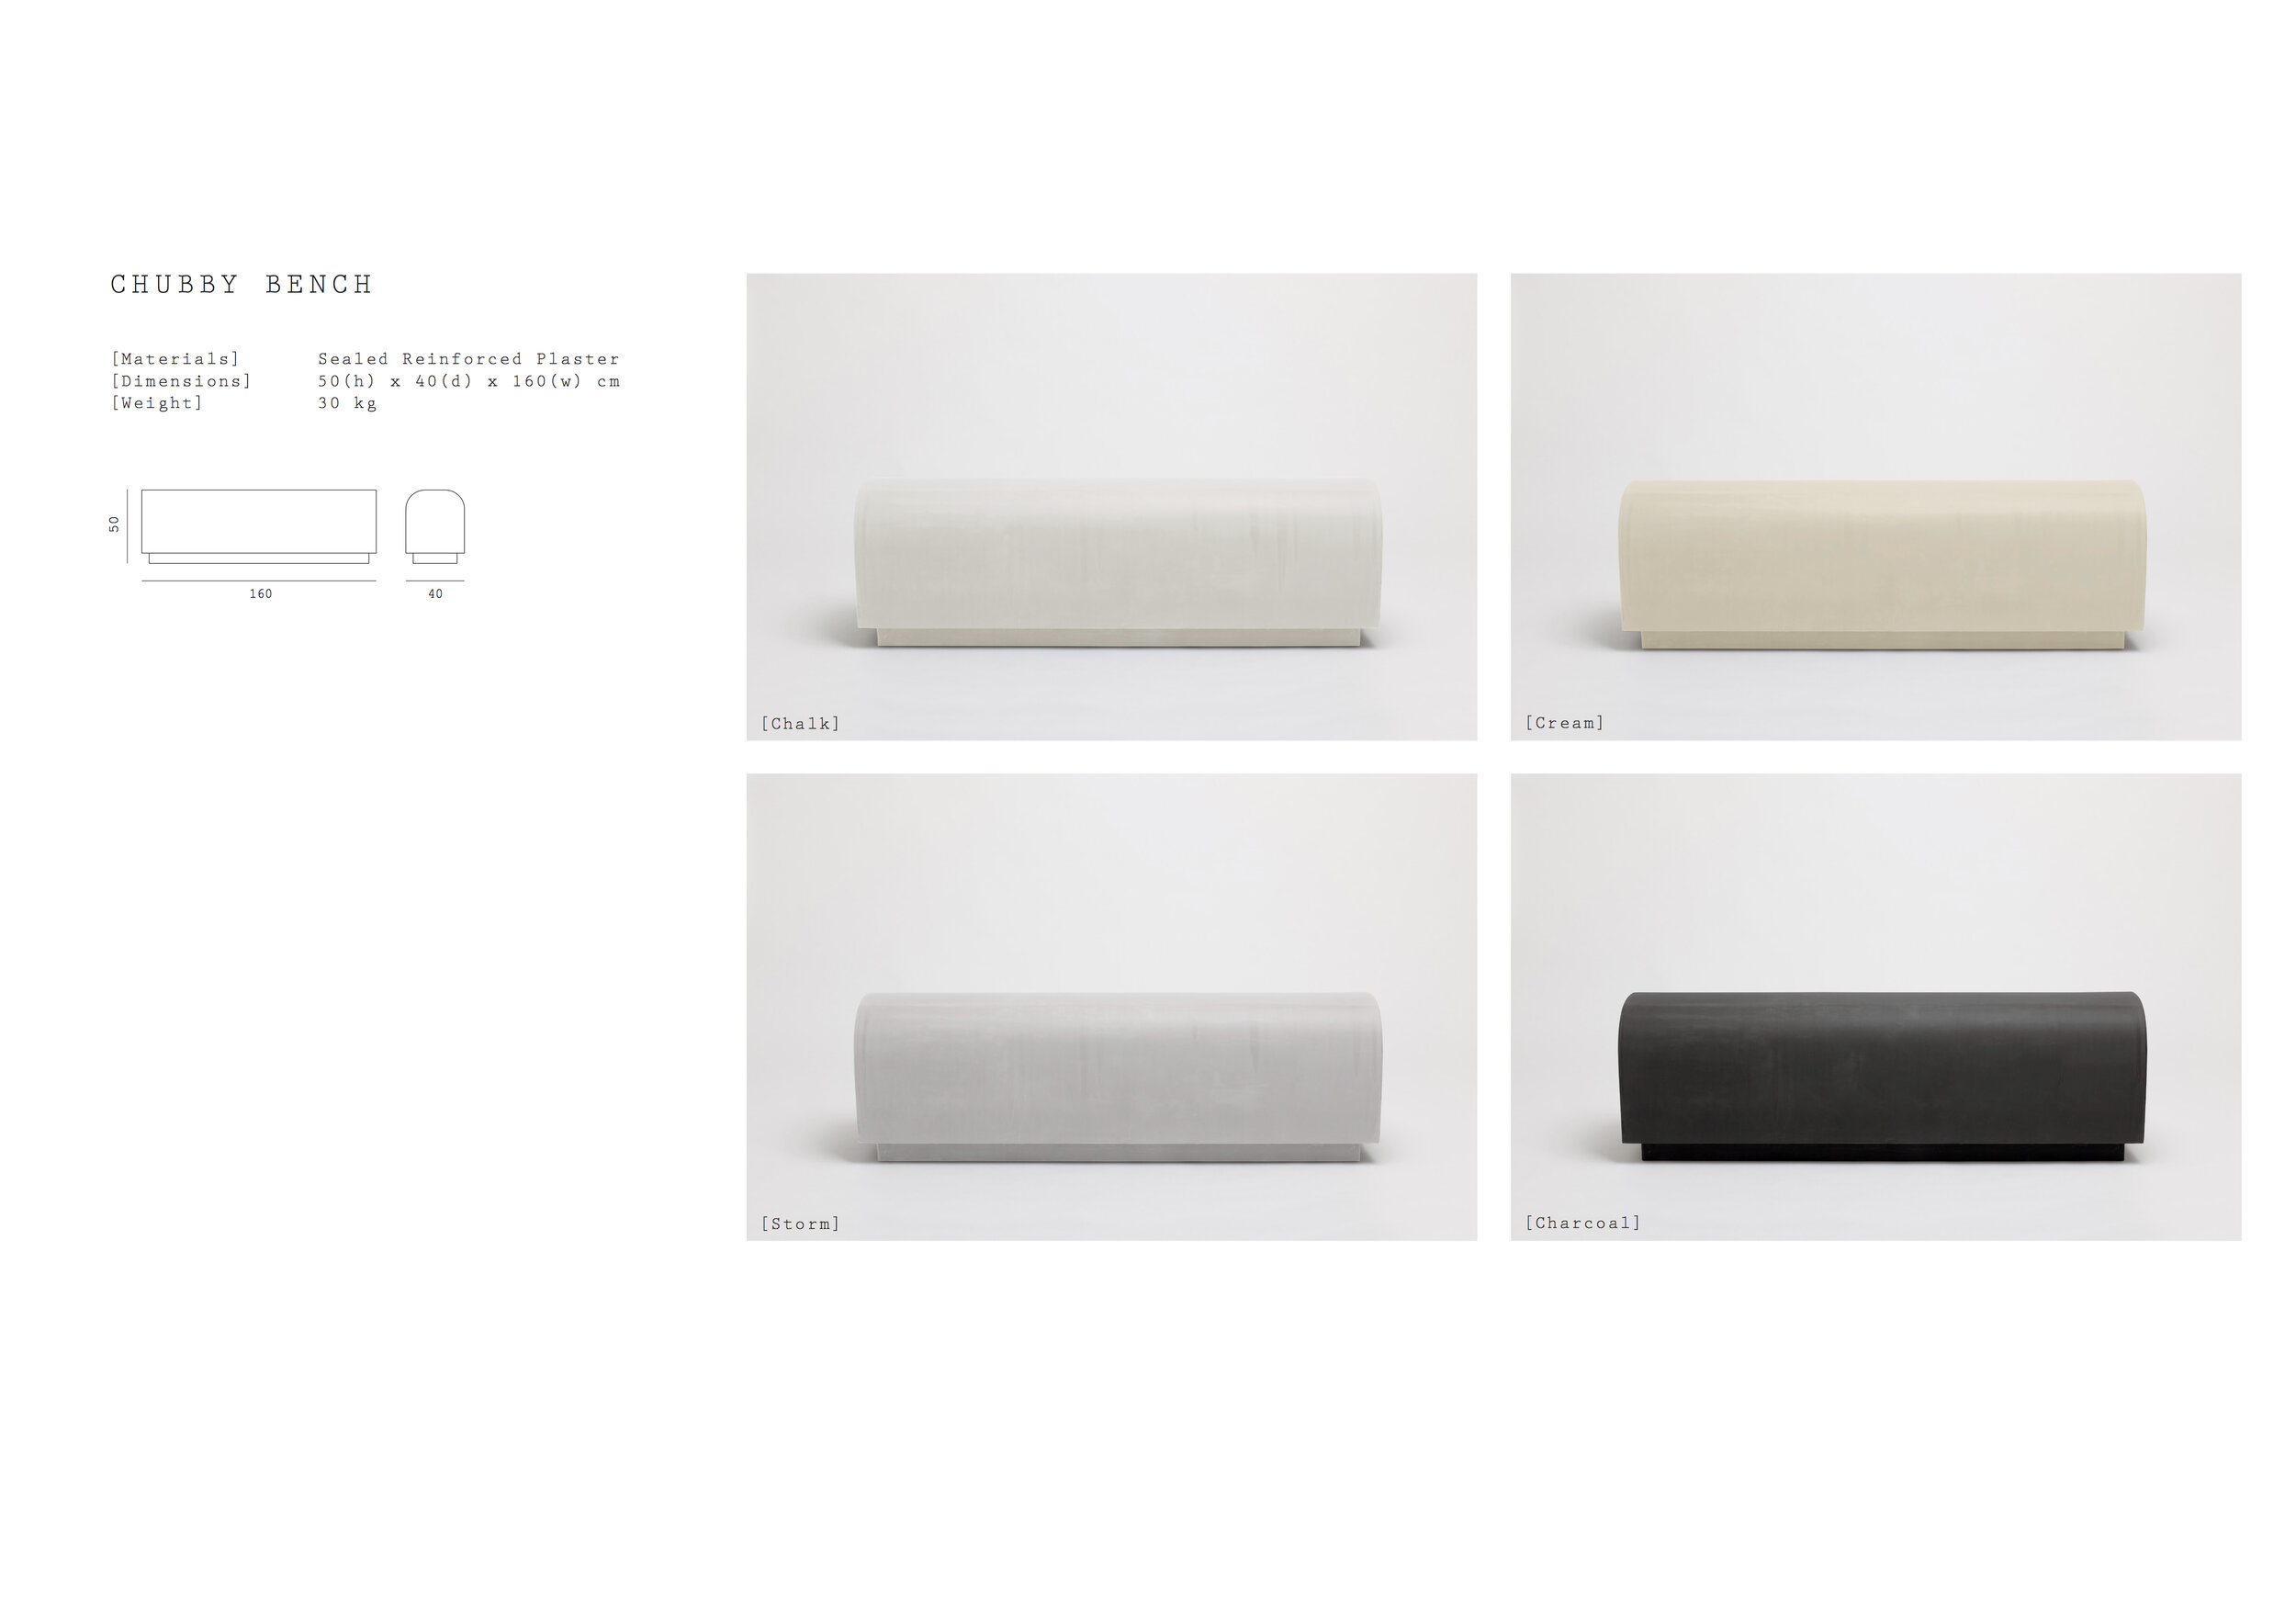 Catalogue_Unlimited_190912_CHUBBY_BENCH copy.jpg